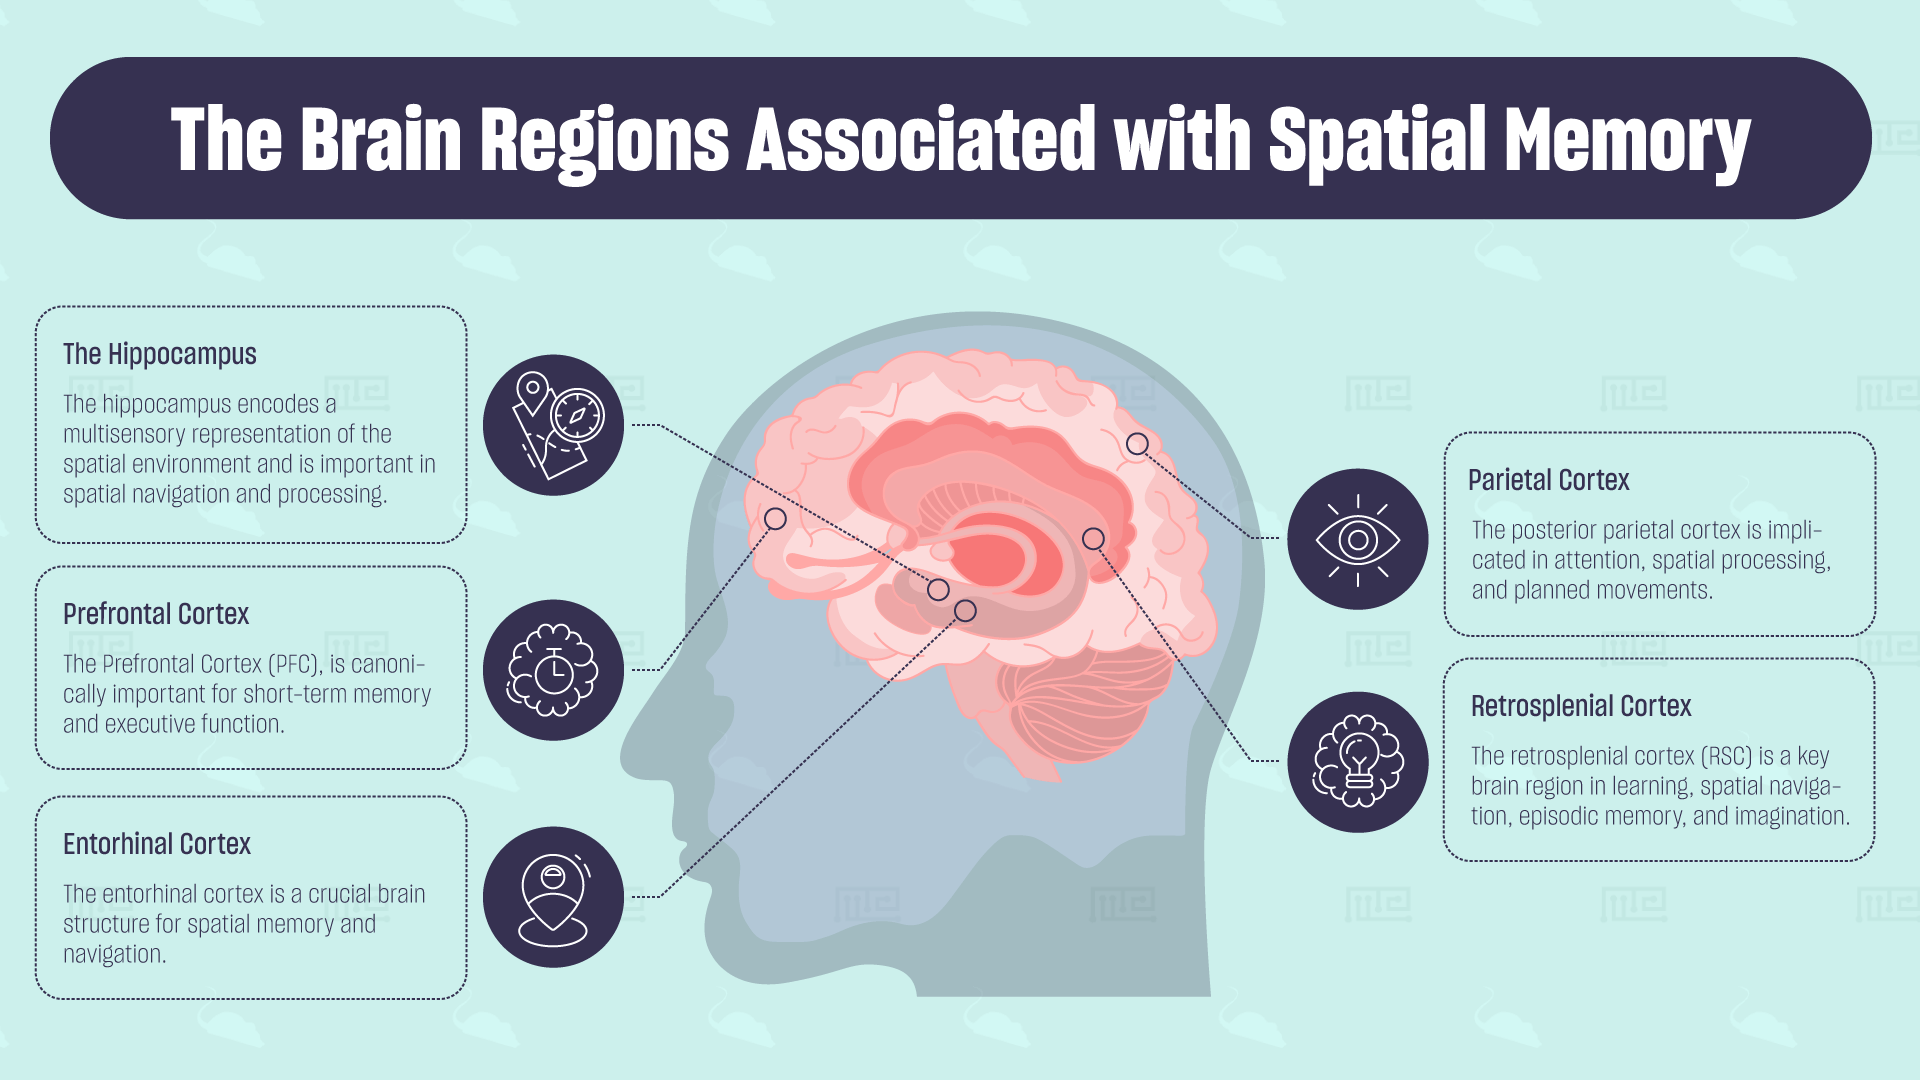 The Brain Regions Associated with Spatial Memory